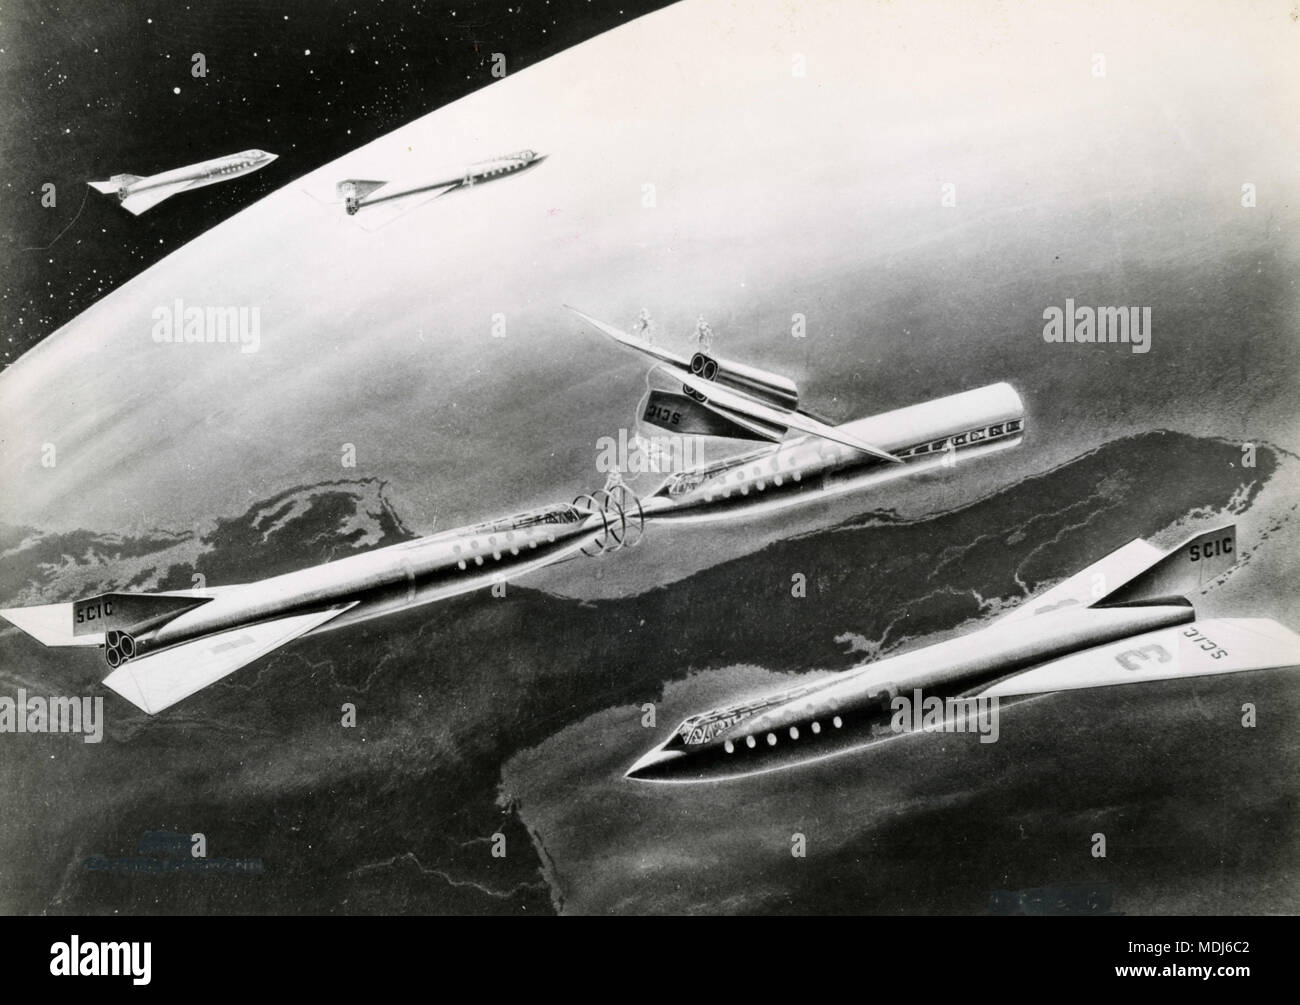 Graphical rendering of space vehicles, 1950s - Stock Image